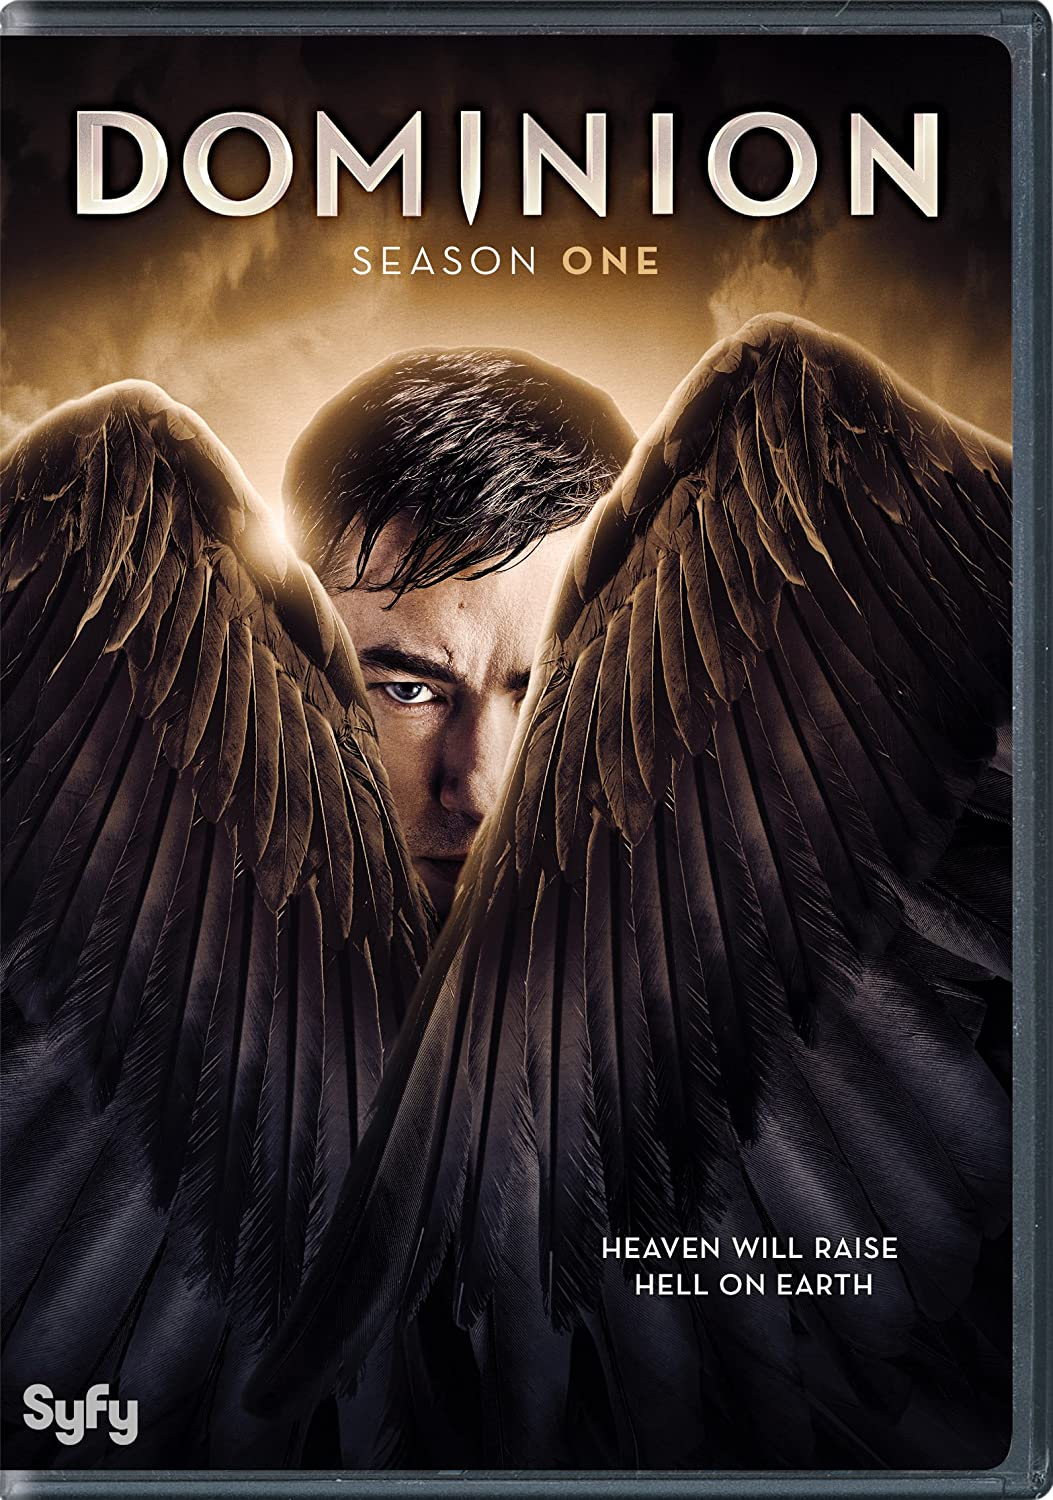 Watch Girls of `Dominion s01 - 2014 HD video